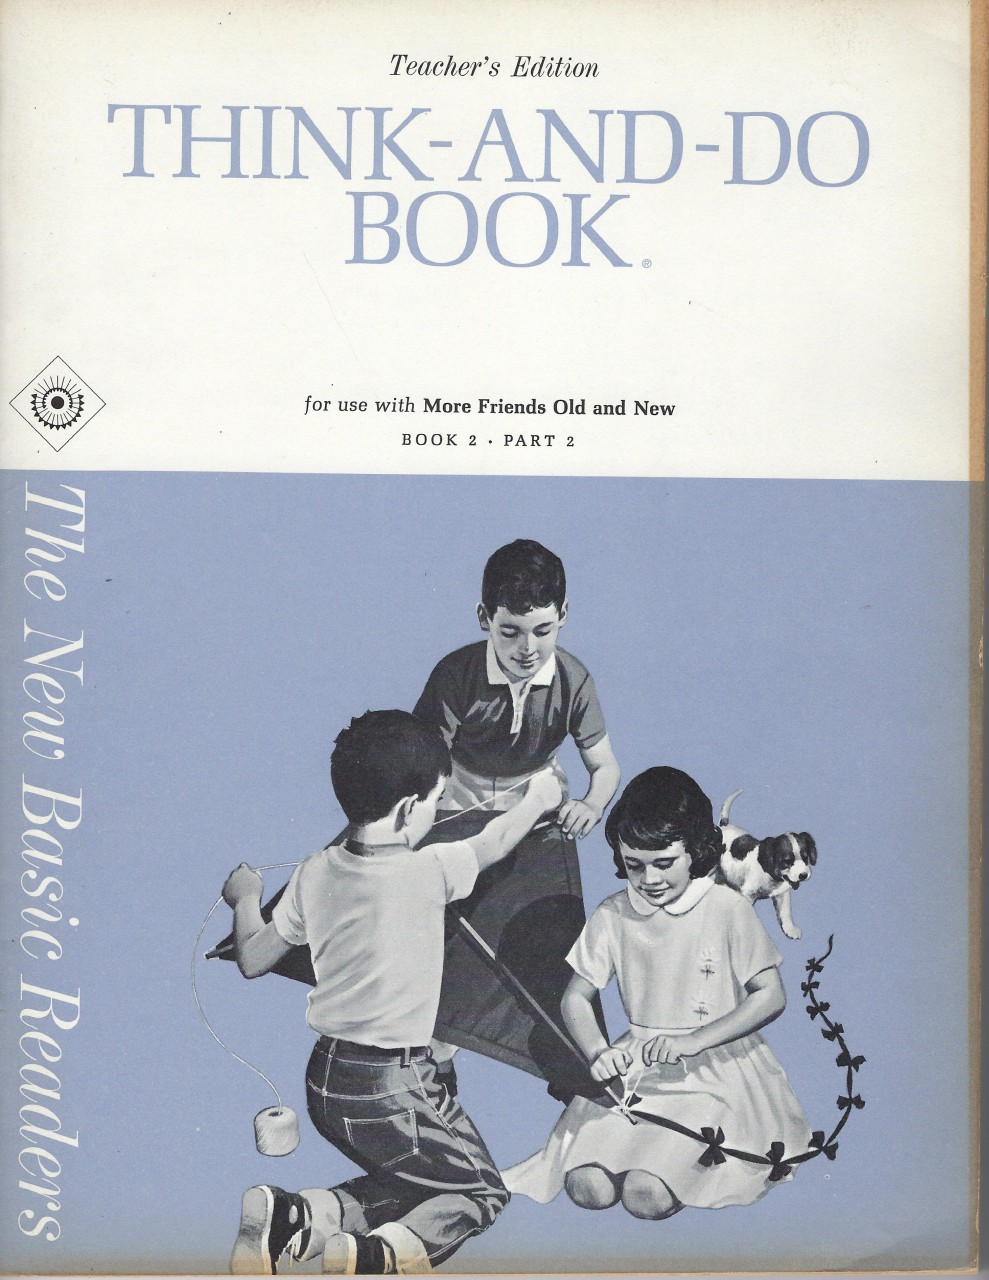 Think and Do Teacher's Edition for More Friends Old and New Dick and Jane 1965, Helen M. Robinson, Marion Monroe, A. Sterl Artley